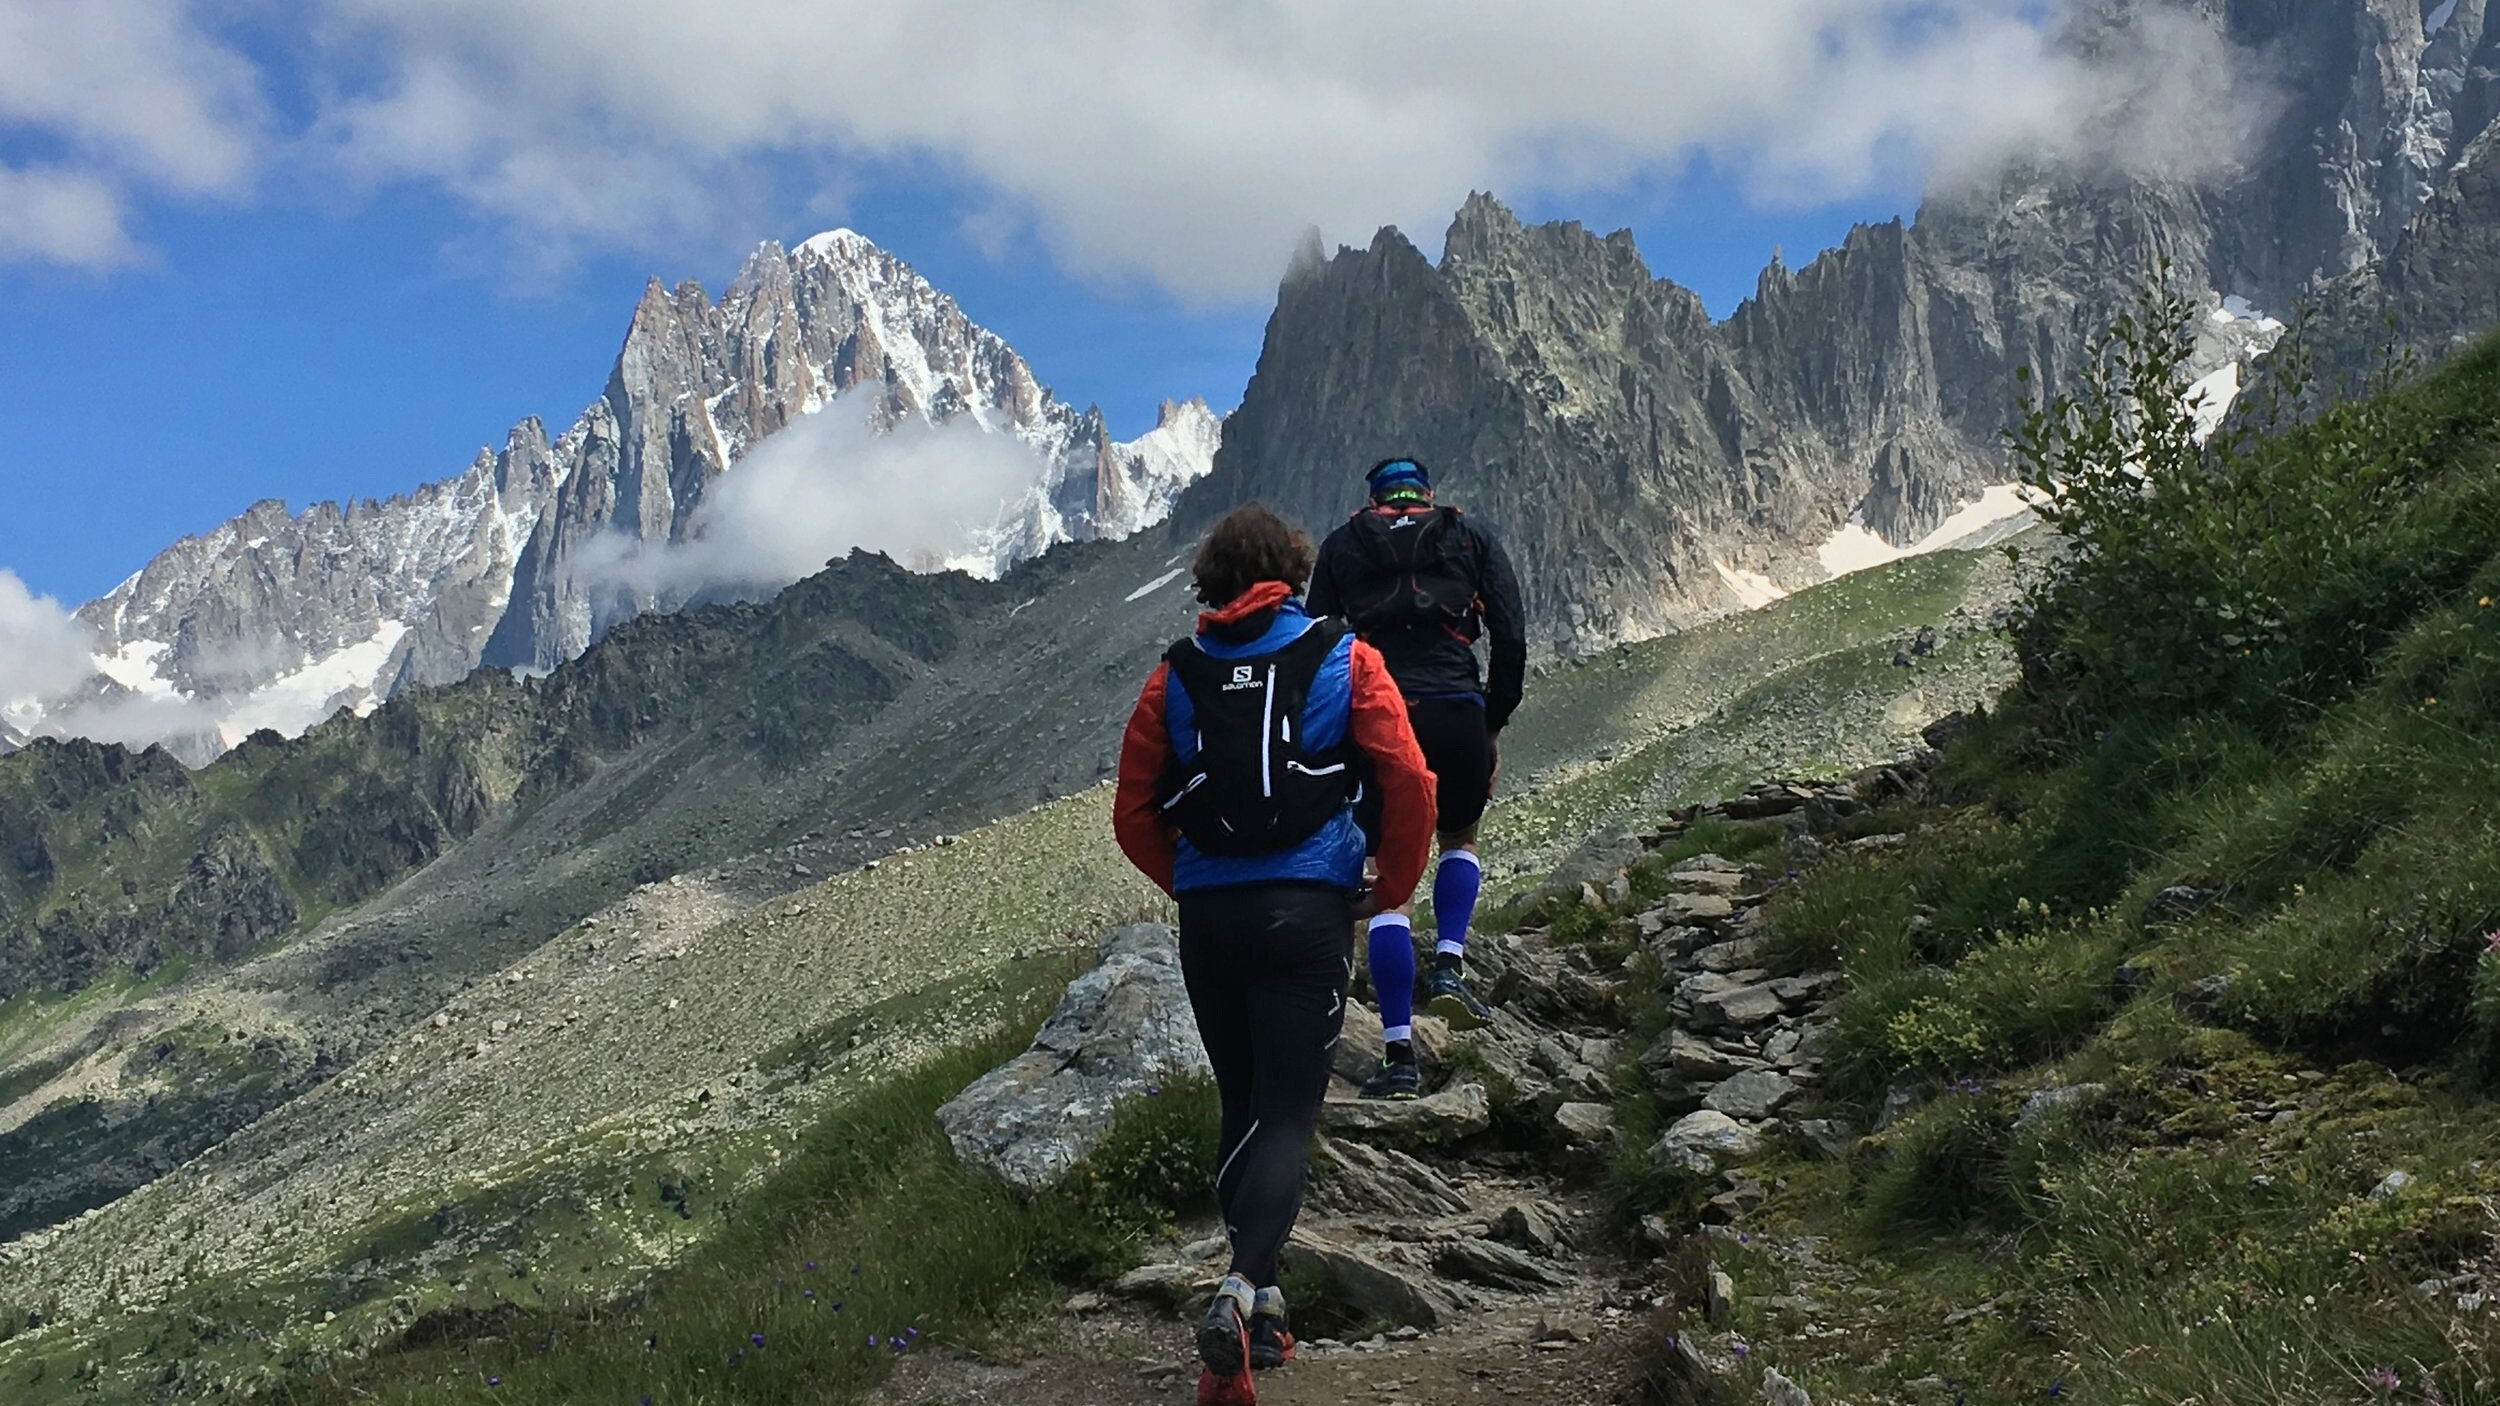 TOUR DU MONT BLANC - August/September 2020